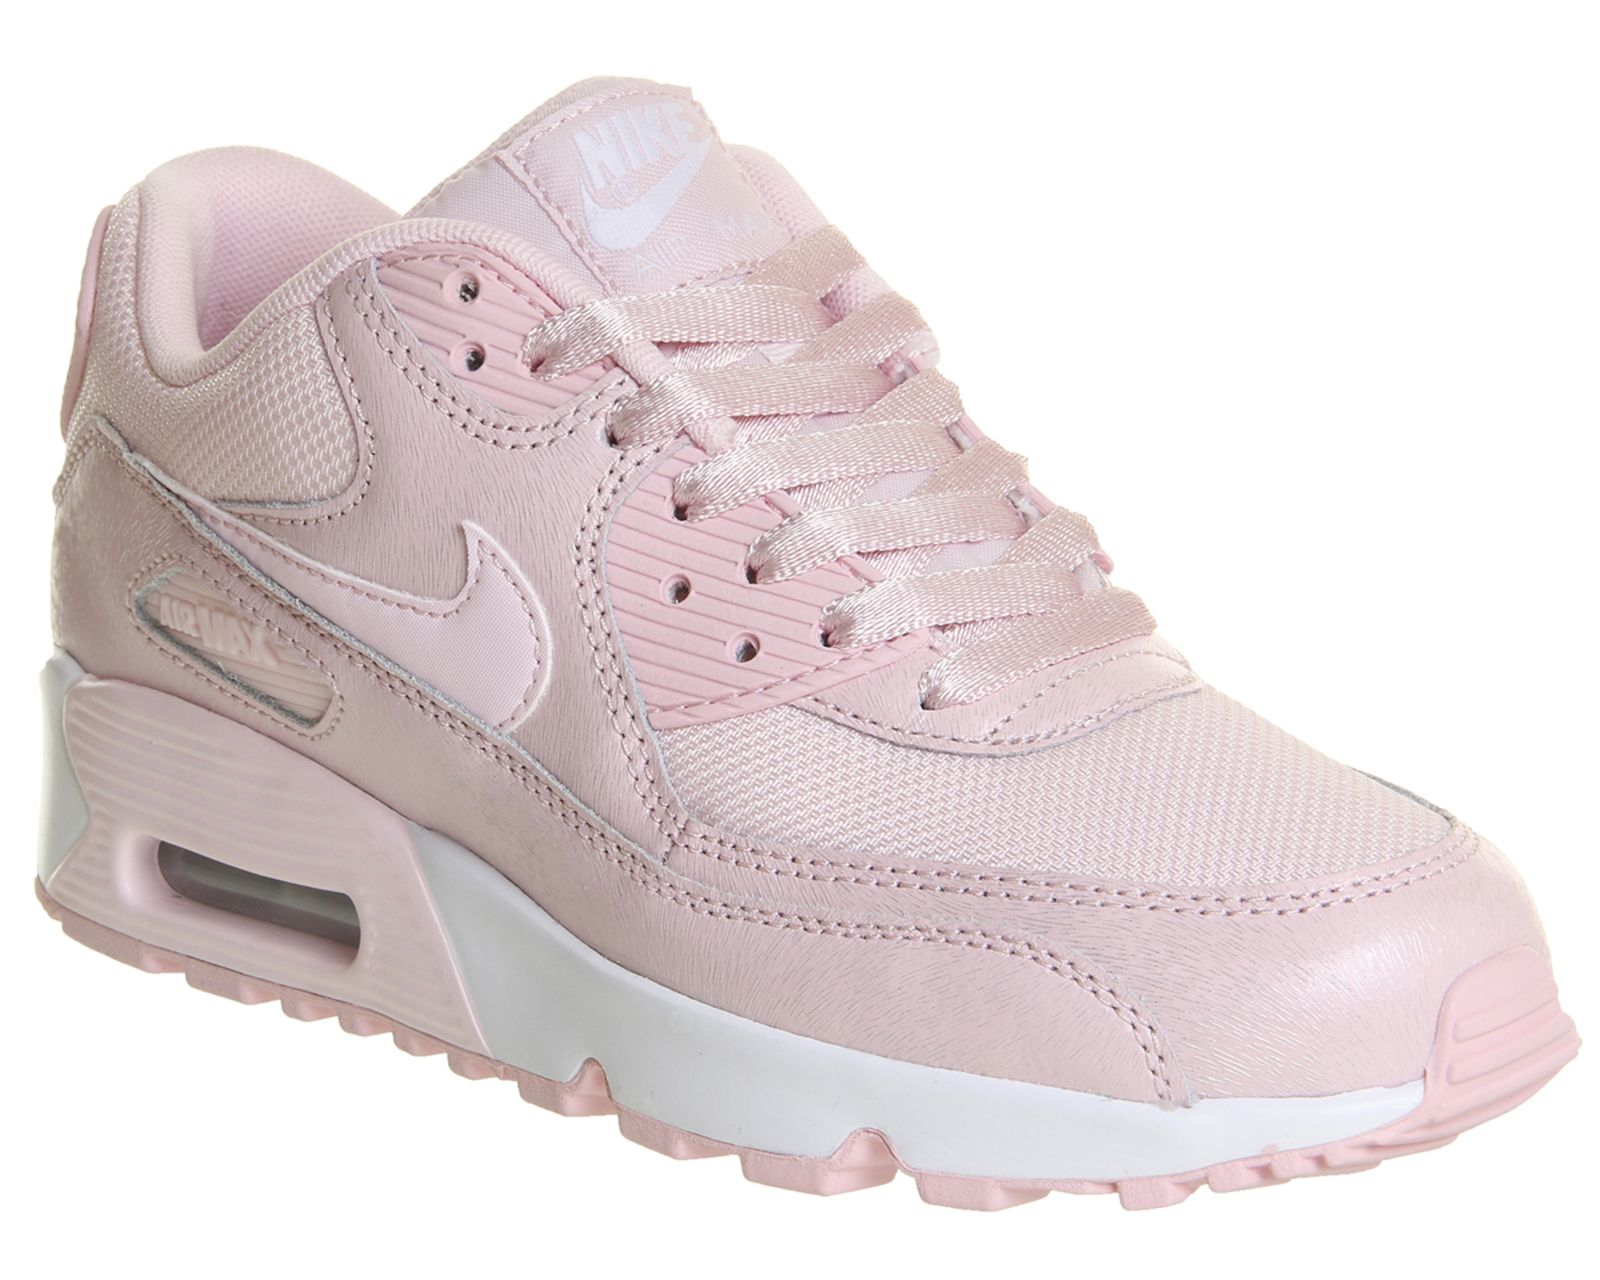 purchase cheap 04fac 60360 greece nike air max 90 pink glaze basket weave gum 22d36 7392b